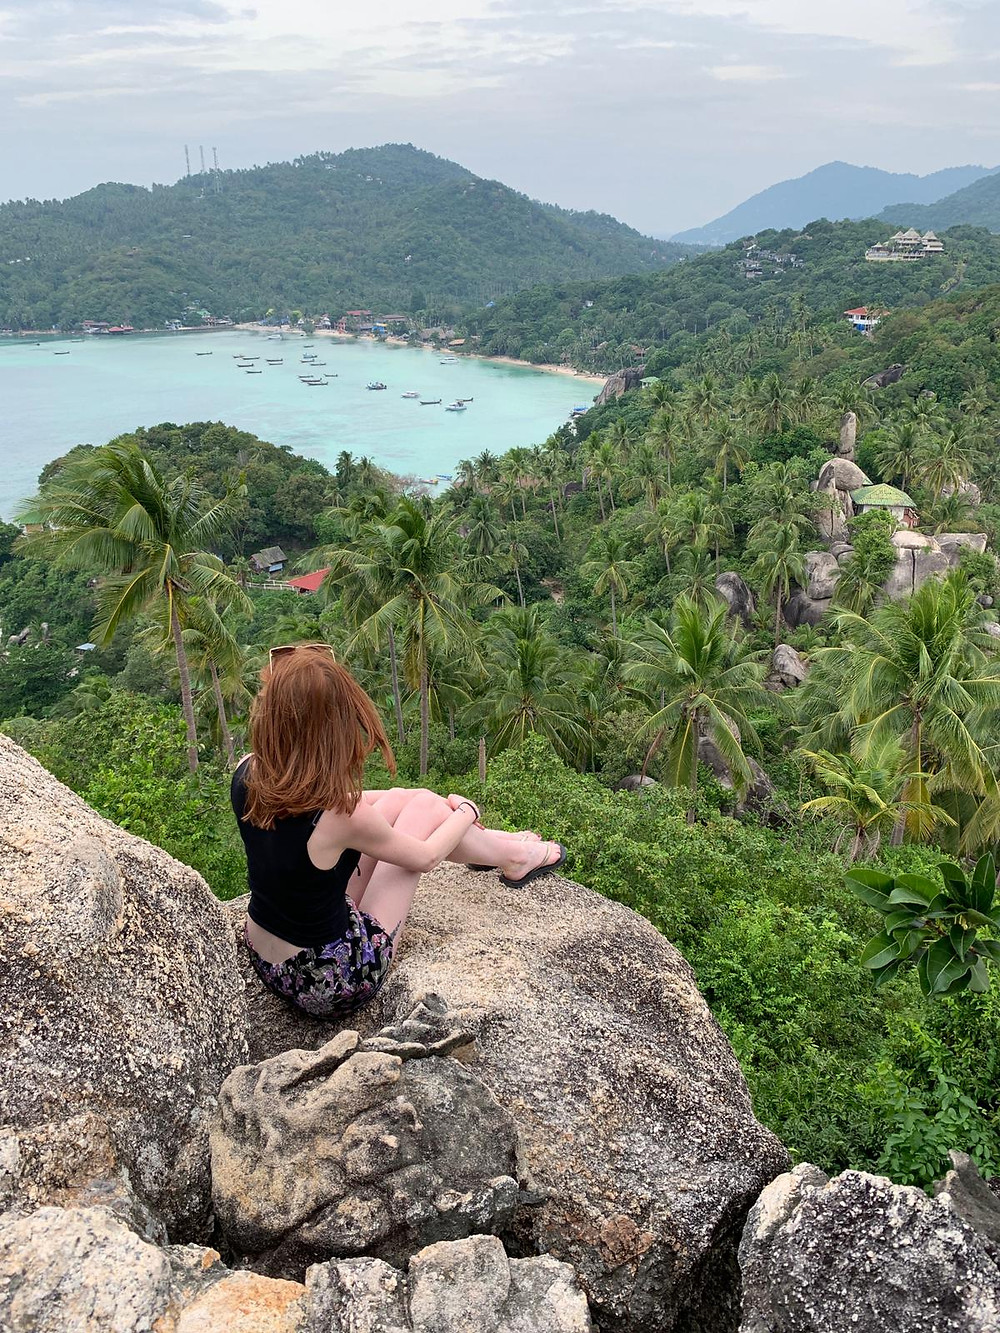 Enjoying the view in Thailand